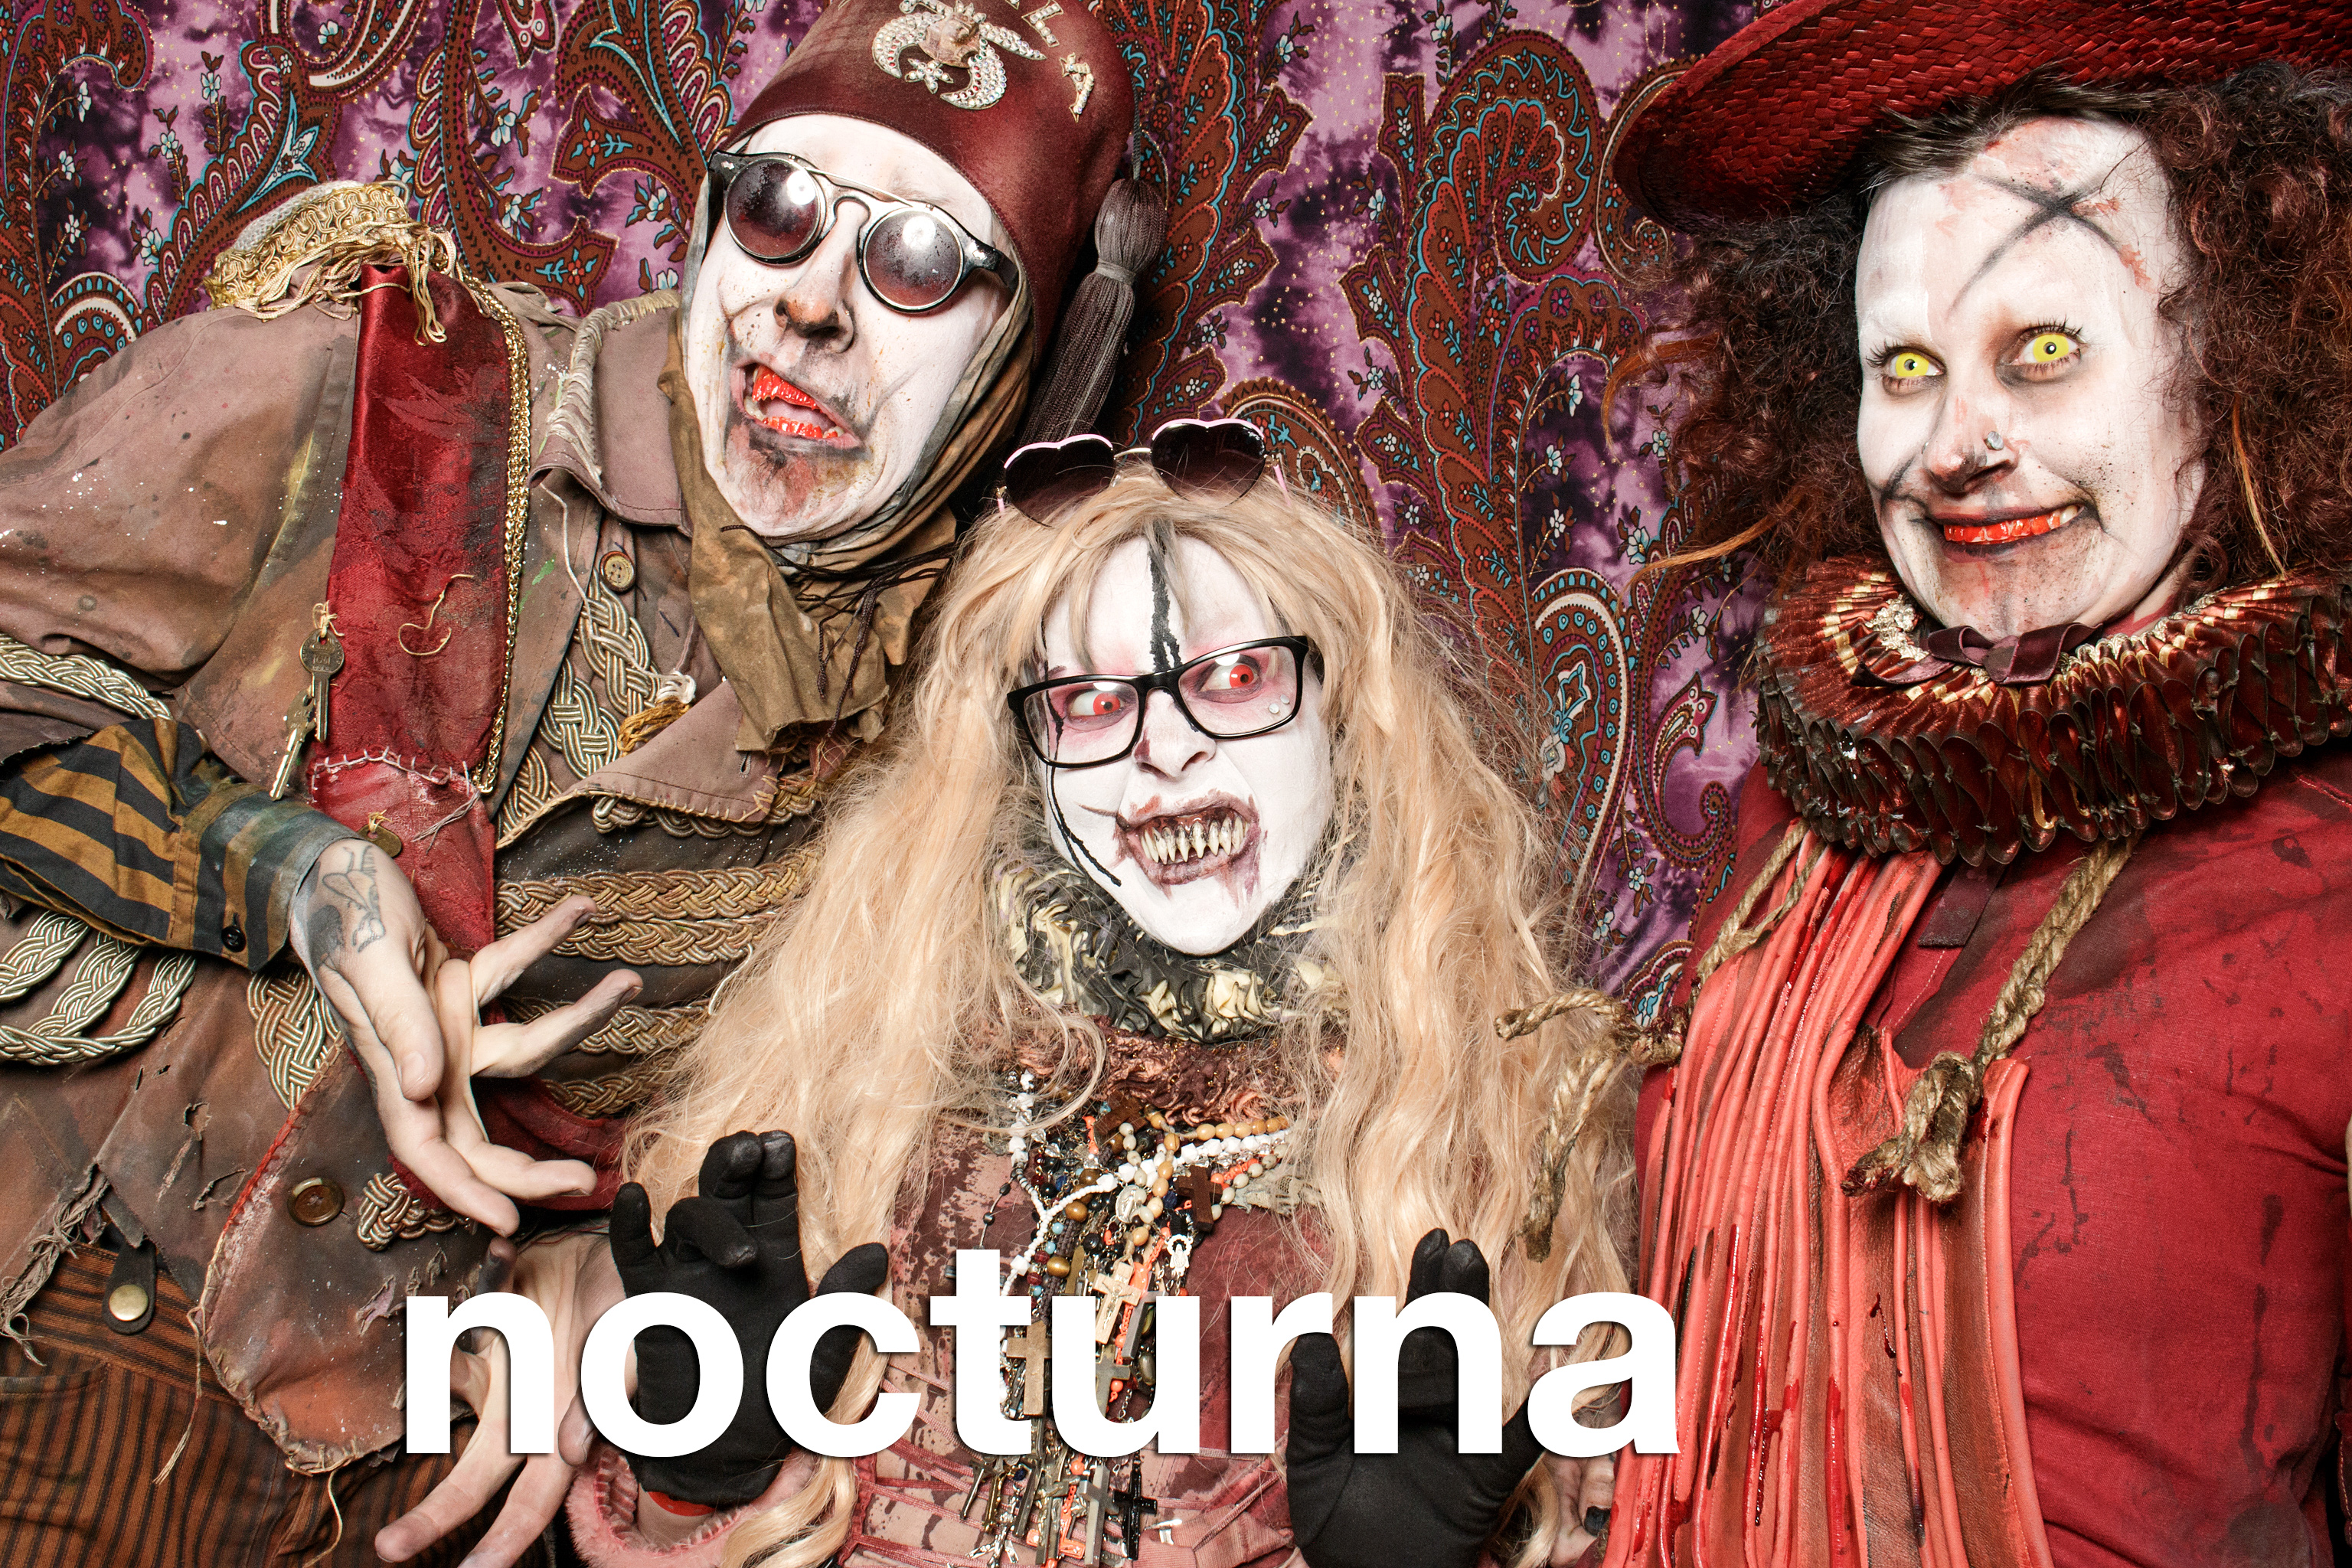 portrait booth photos from nocturna halloween at the metro, october 28 2017